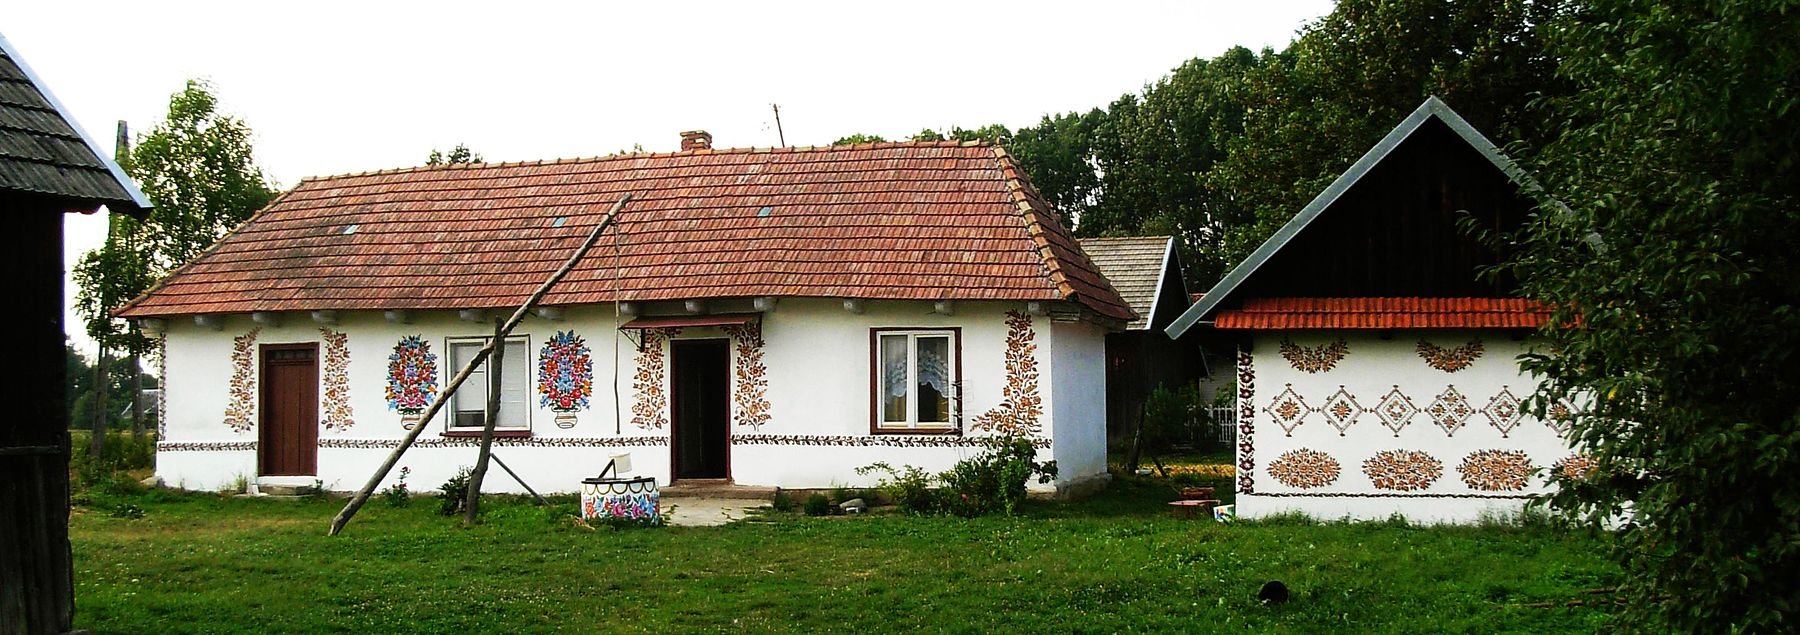 Zalipie - painted cottage 10 panorama.jpg